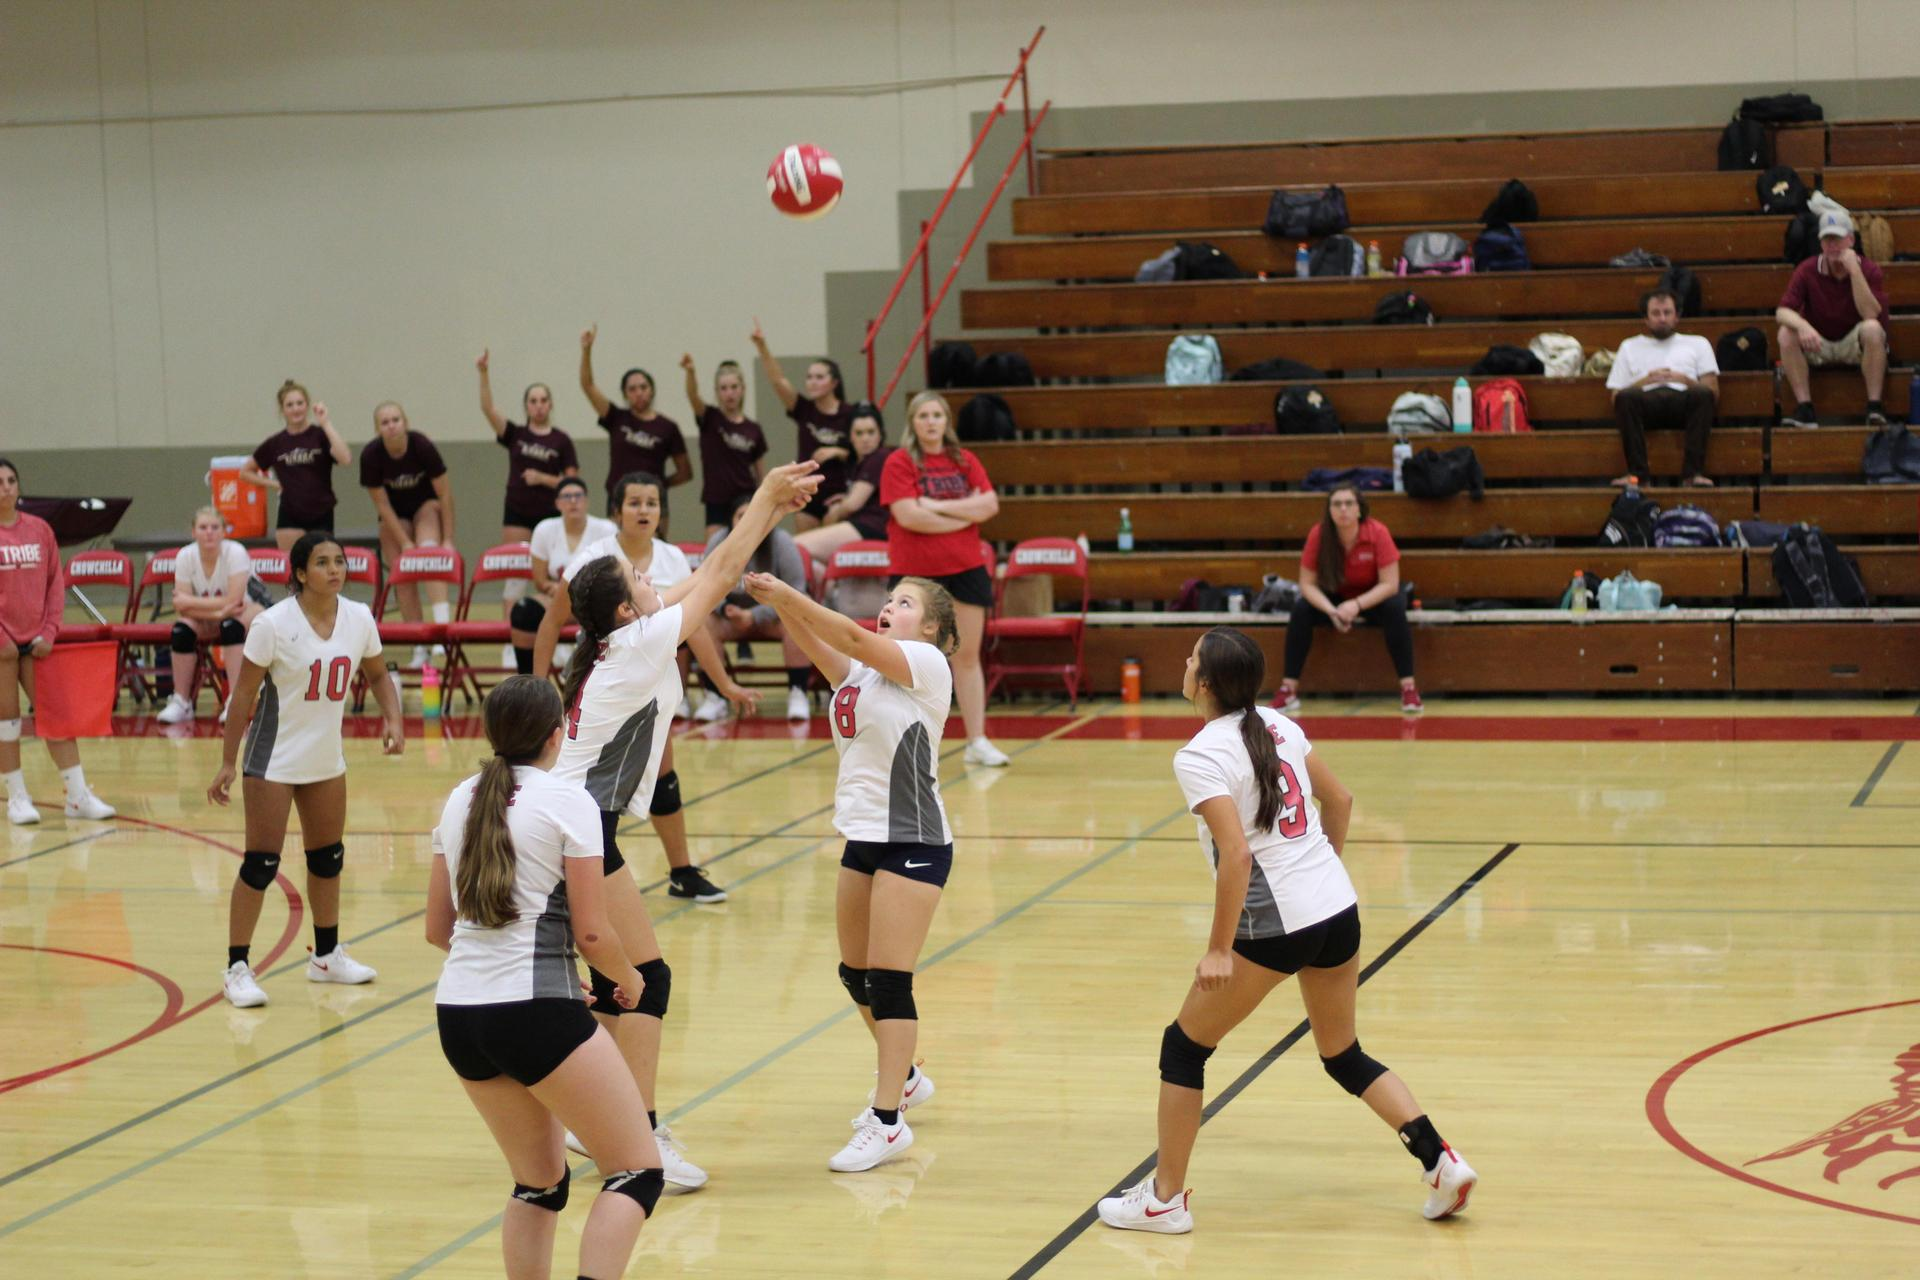 Junior Varsity girls playing volleyball against Sierra